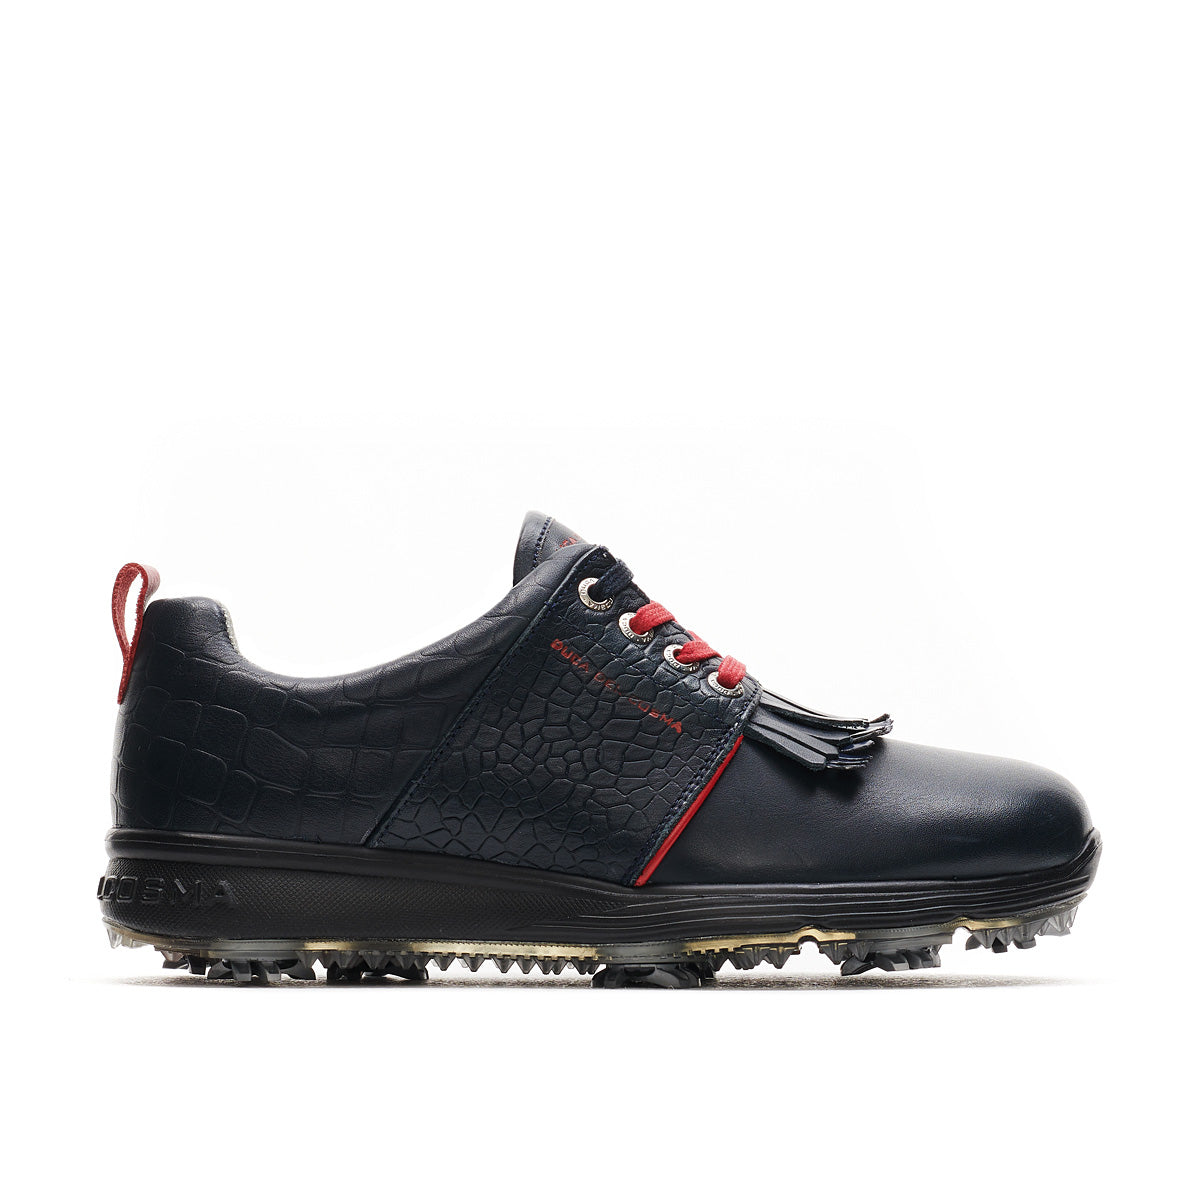 Women's Cypress Navy/Red Golf Shoes